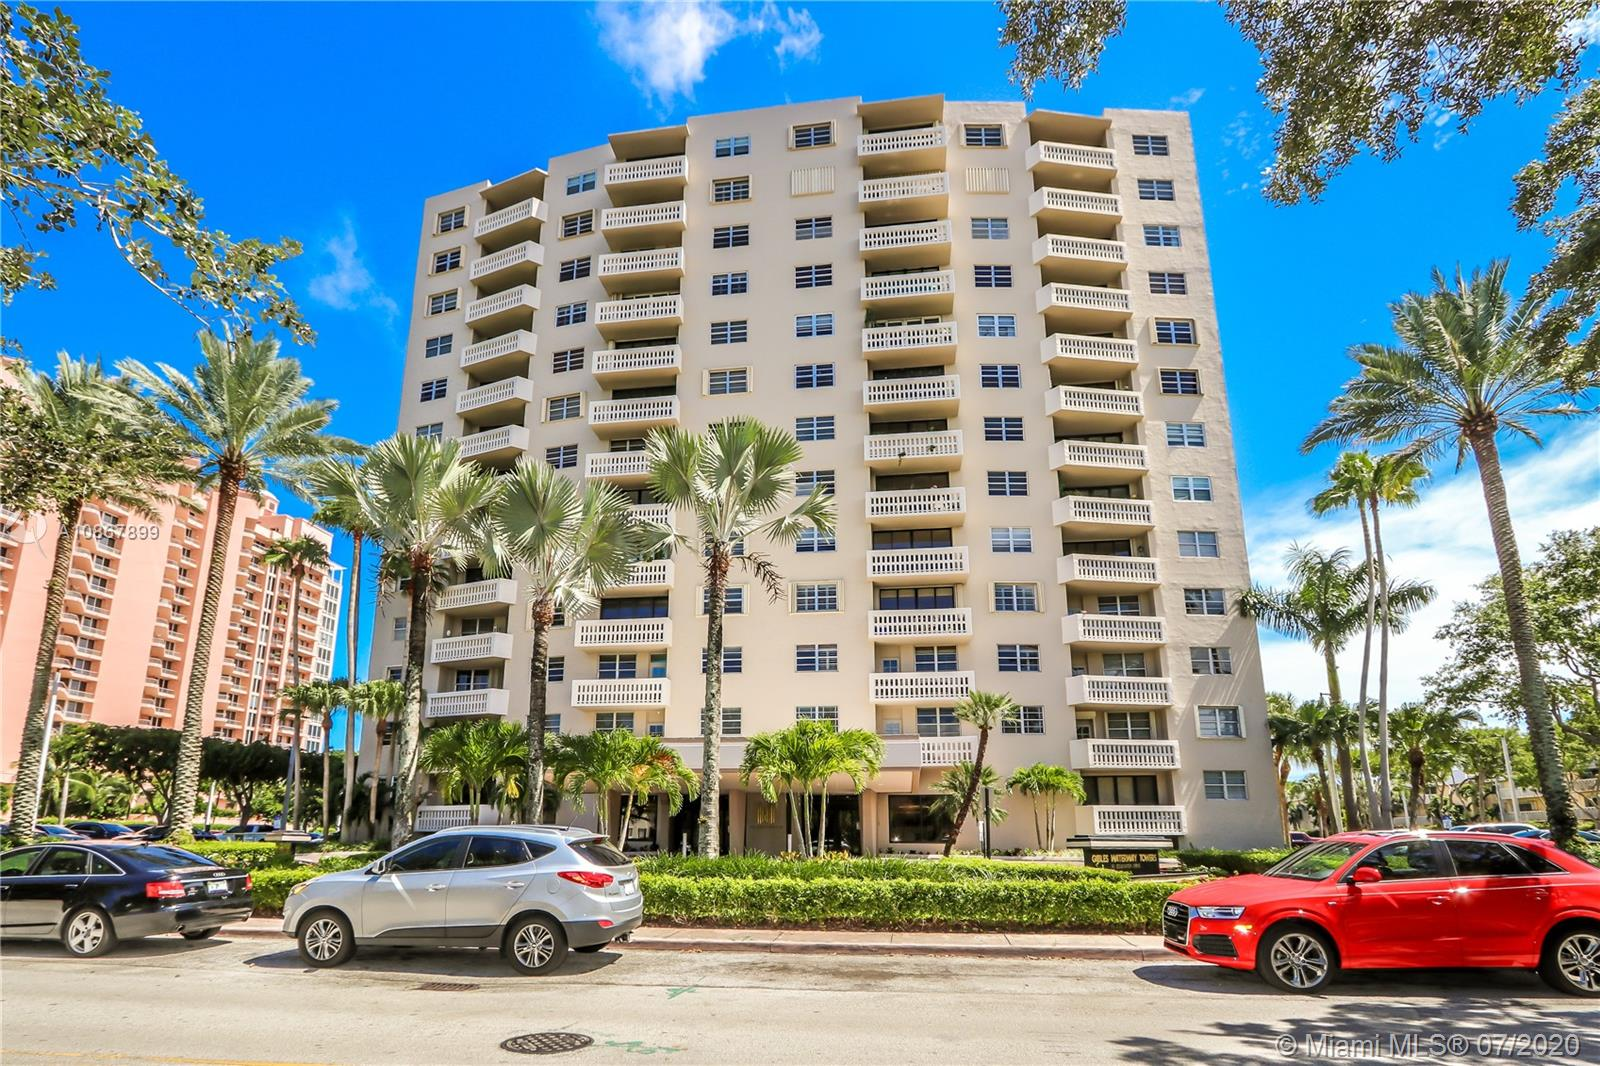 Gables Waterway #605 - 90 Edgewater Dr #605, Coral Gables, FL 33133